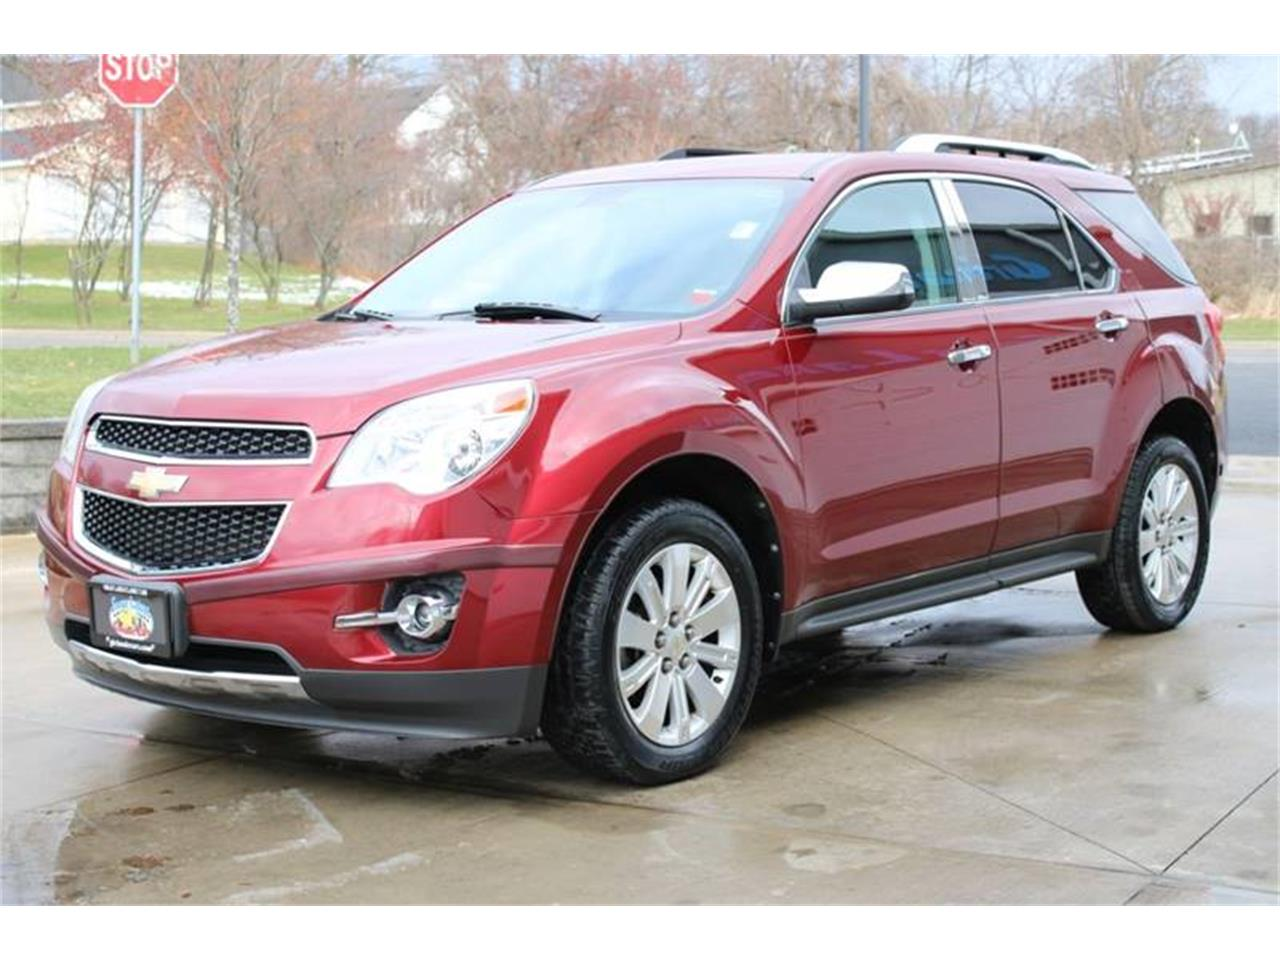 for sale 2011 chevrolet equinox in hilton, new york cars - hilton, ny at geebo